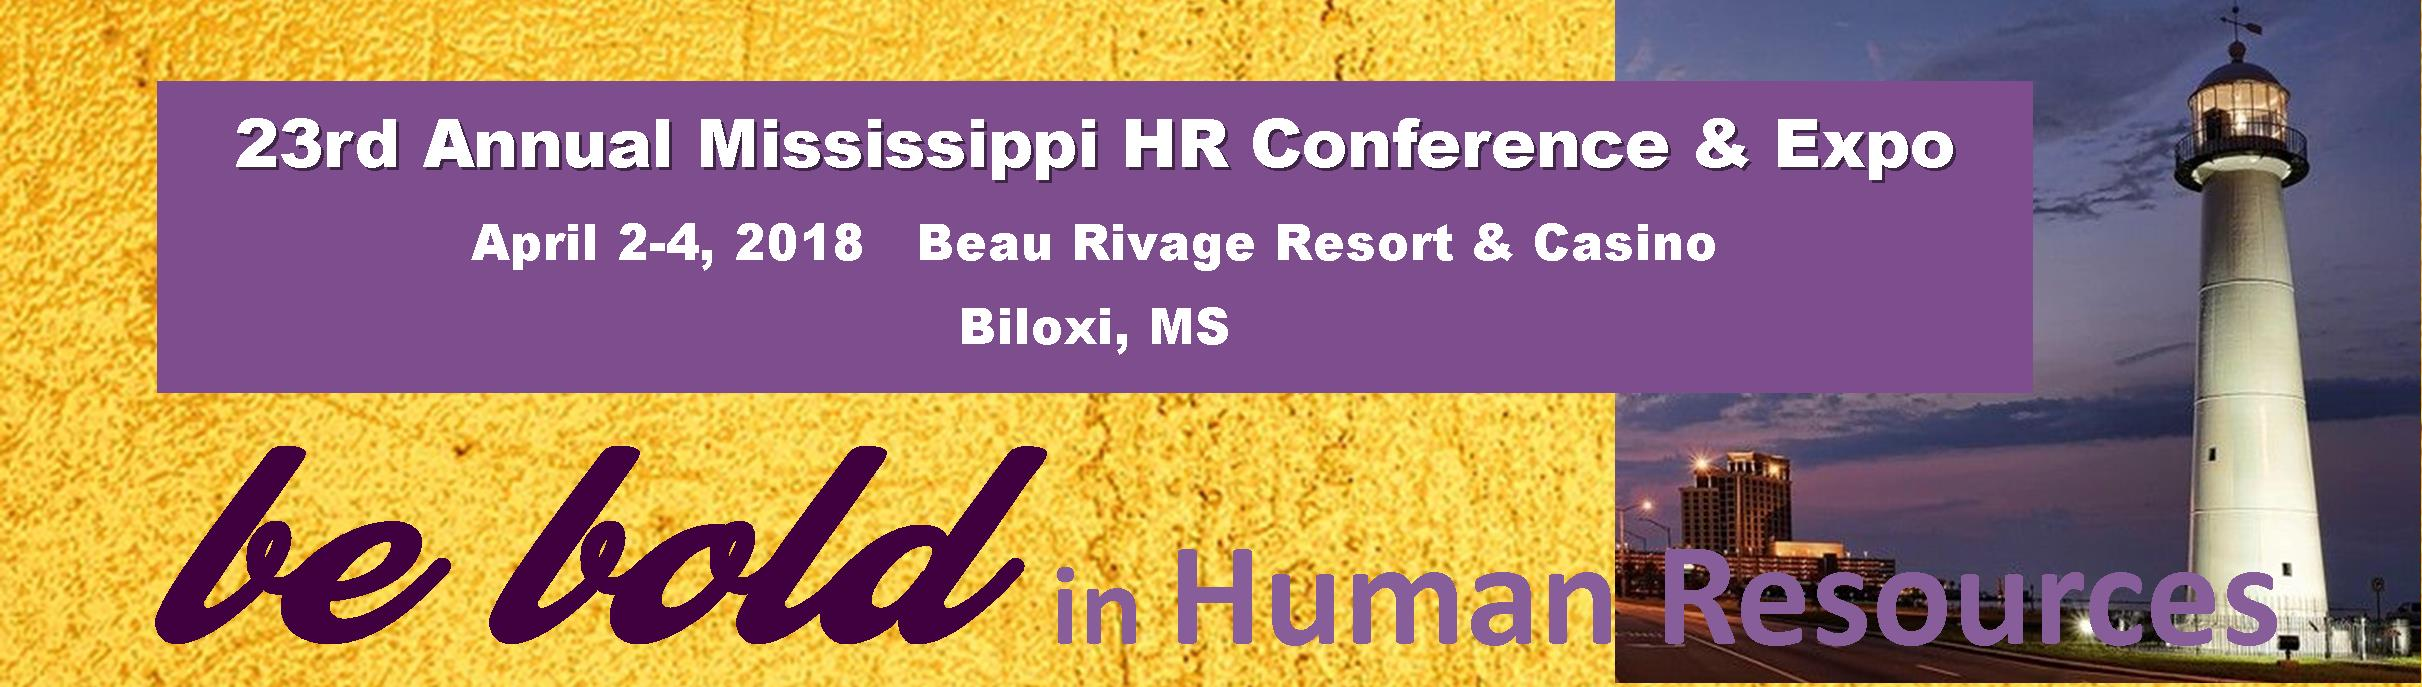 23rd Annual Mississippi Human Resource Conference and Expo